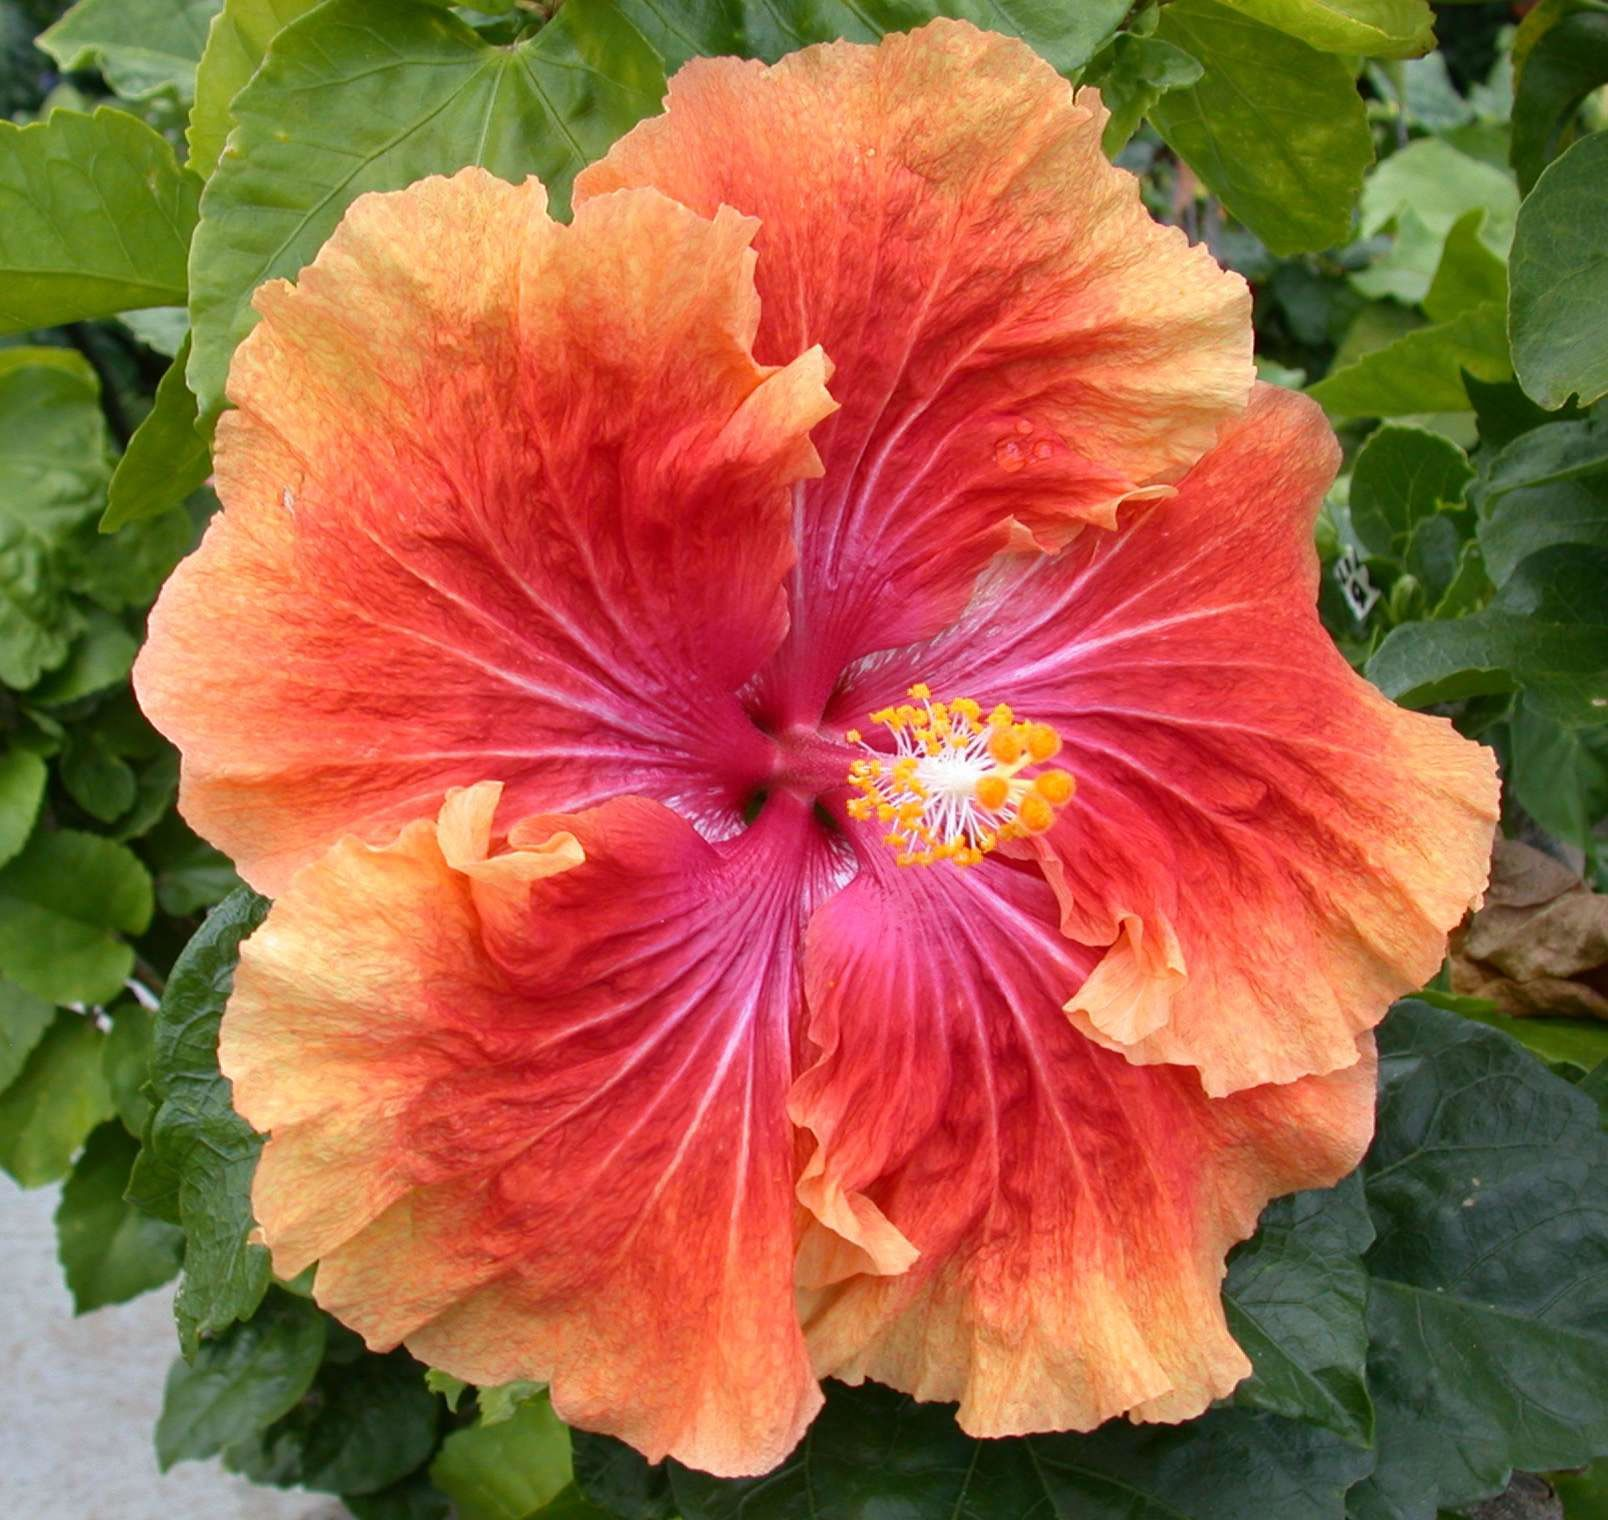 Hibiscus, Tahitian Coral Orange = 1000-1 Coral Passion x Lady In Red, 7.5 in, RJ1.jpg